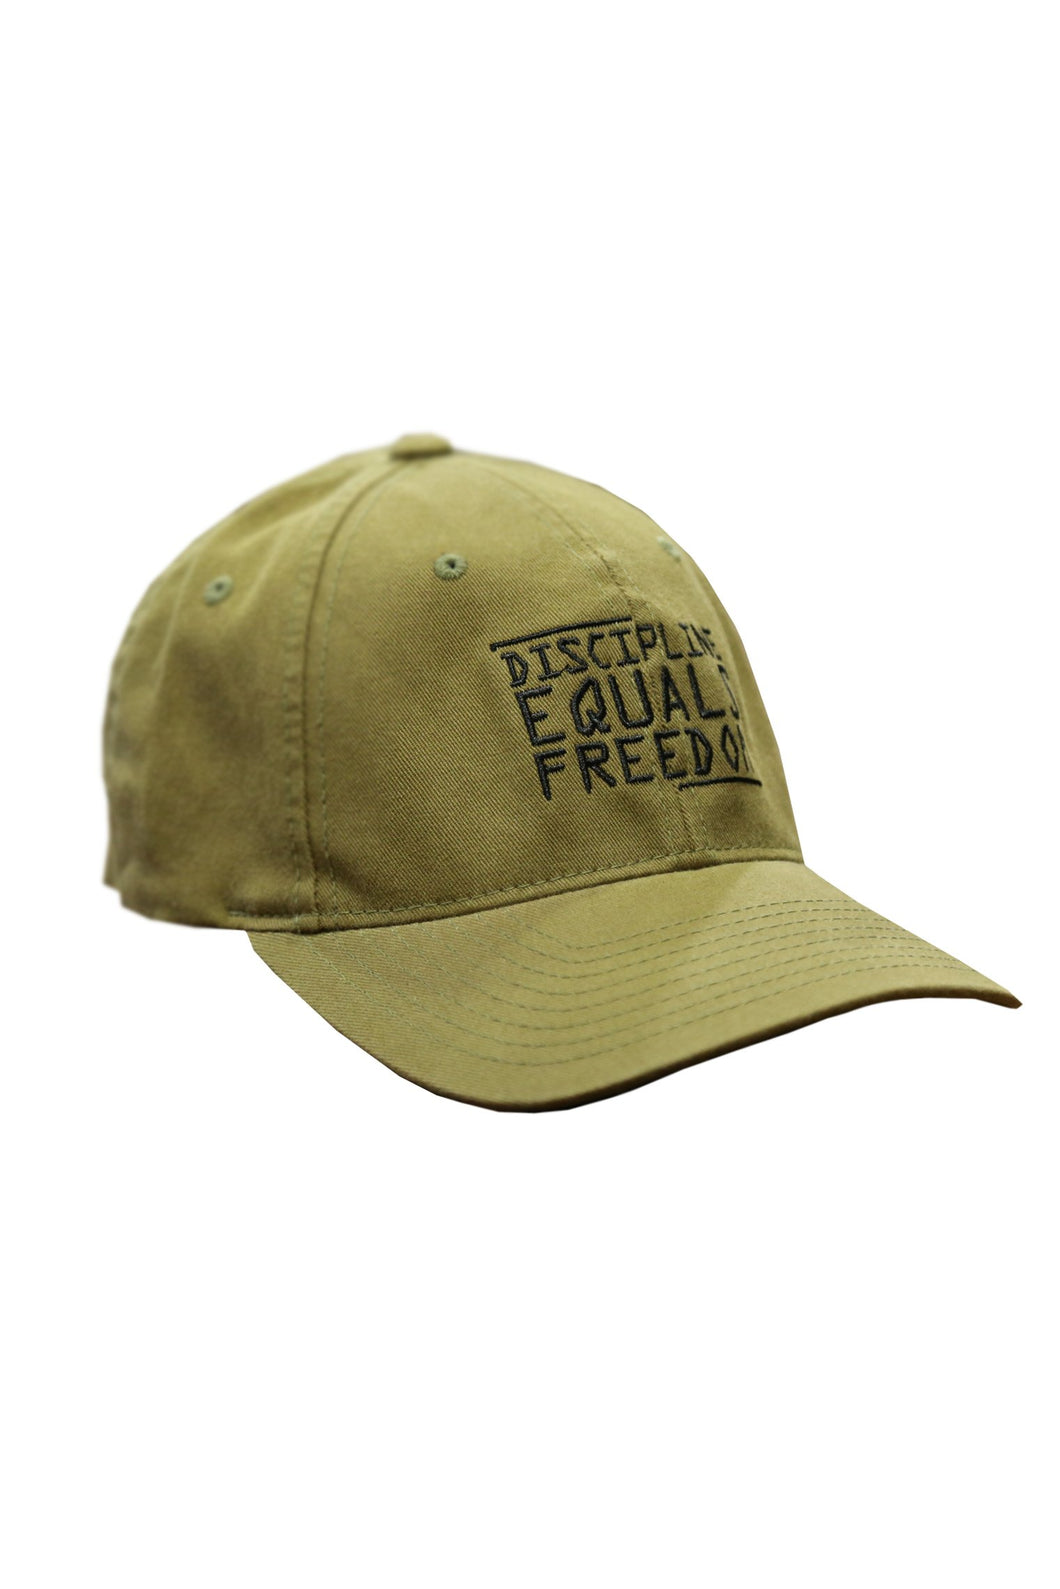 FLEX FIT HAT - DISCIPLINE EQUALS FREEDOM